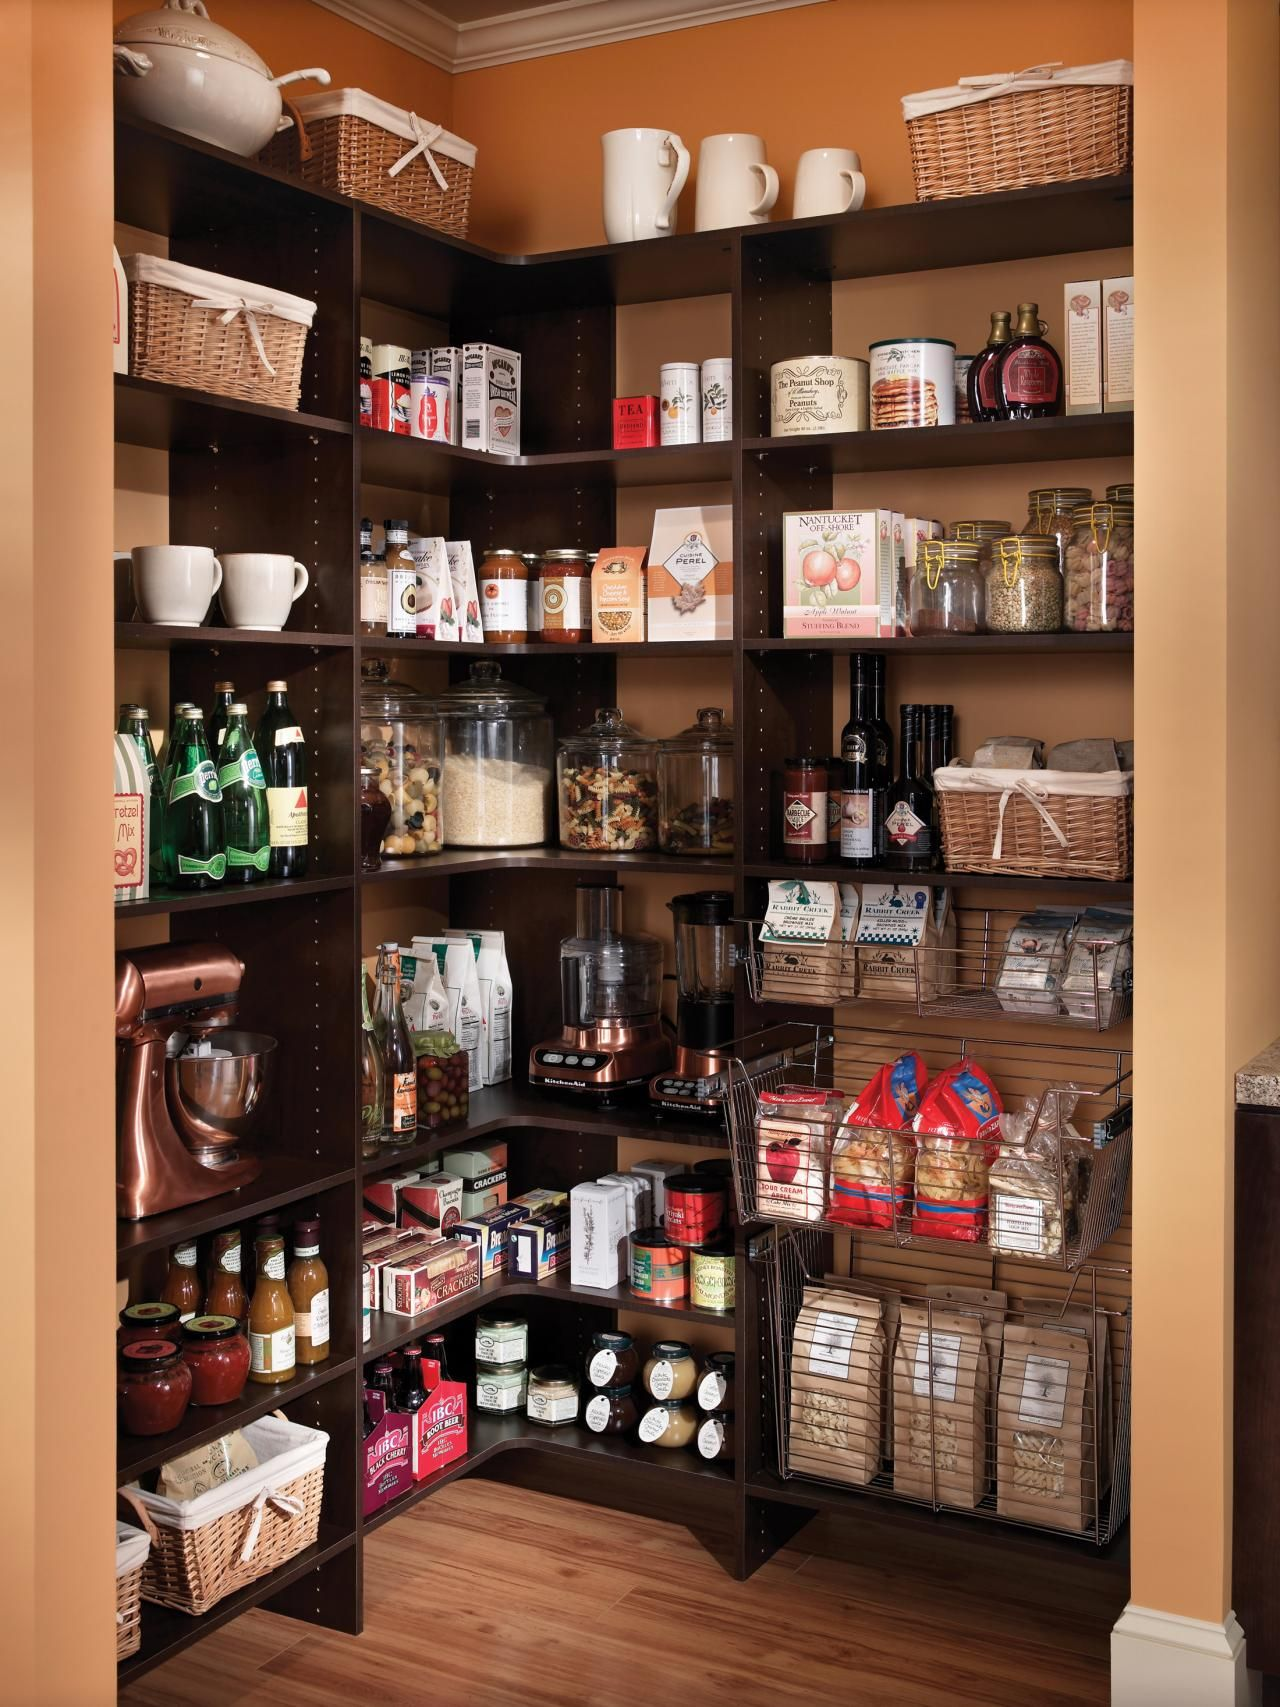 Kitchen Store Room Pictures Of Kitchen Pantry Options And Ideas For Efficient Storage